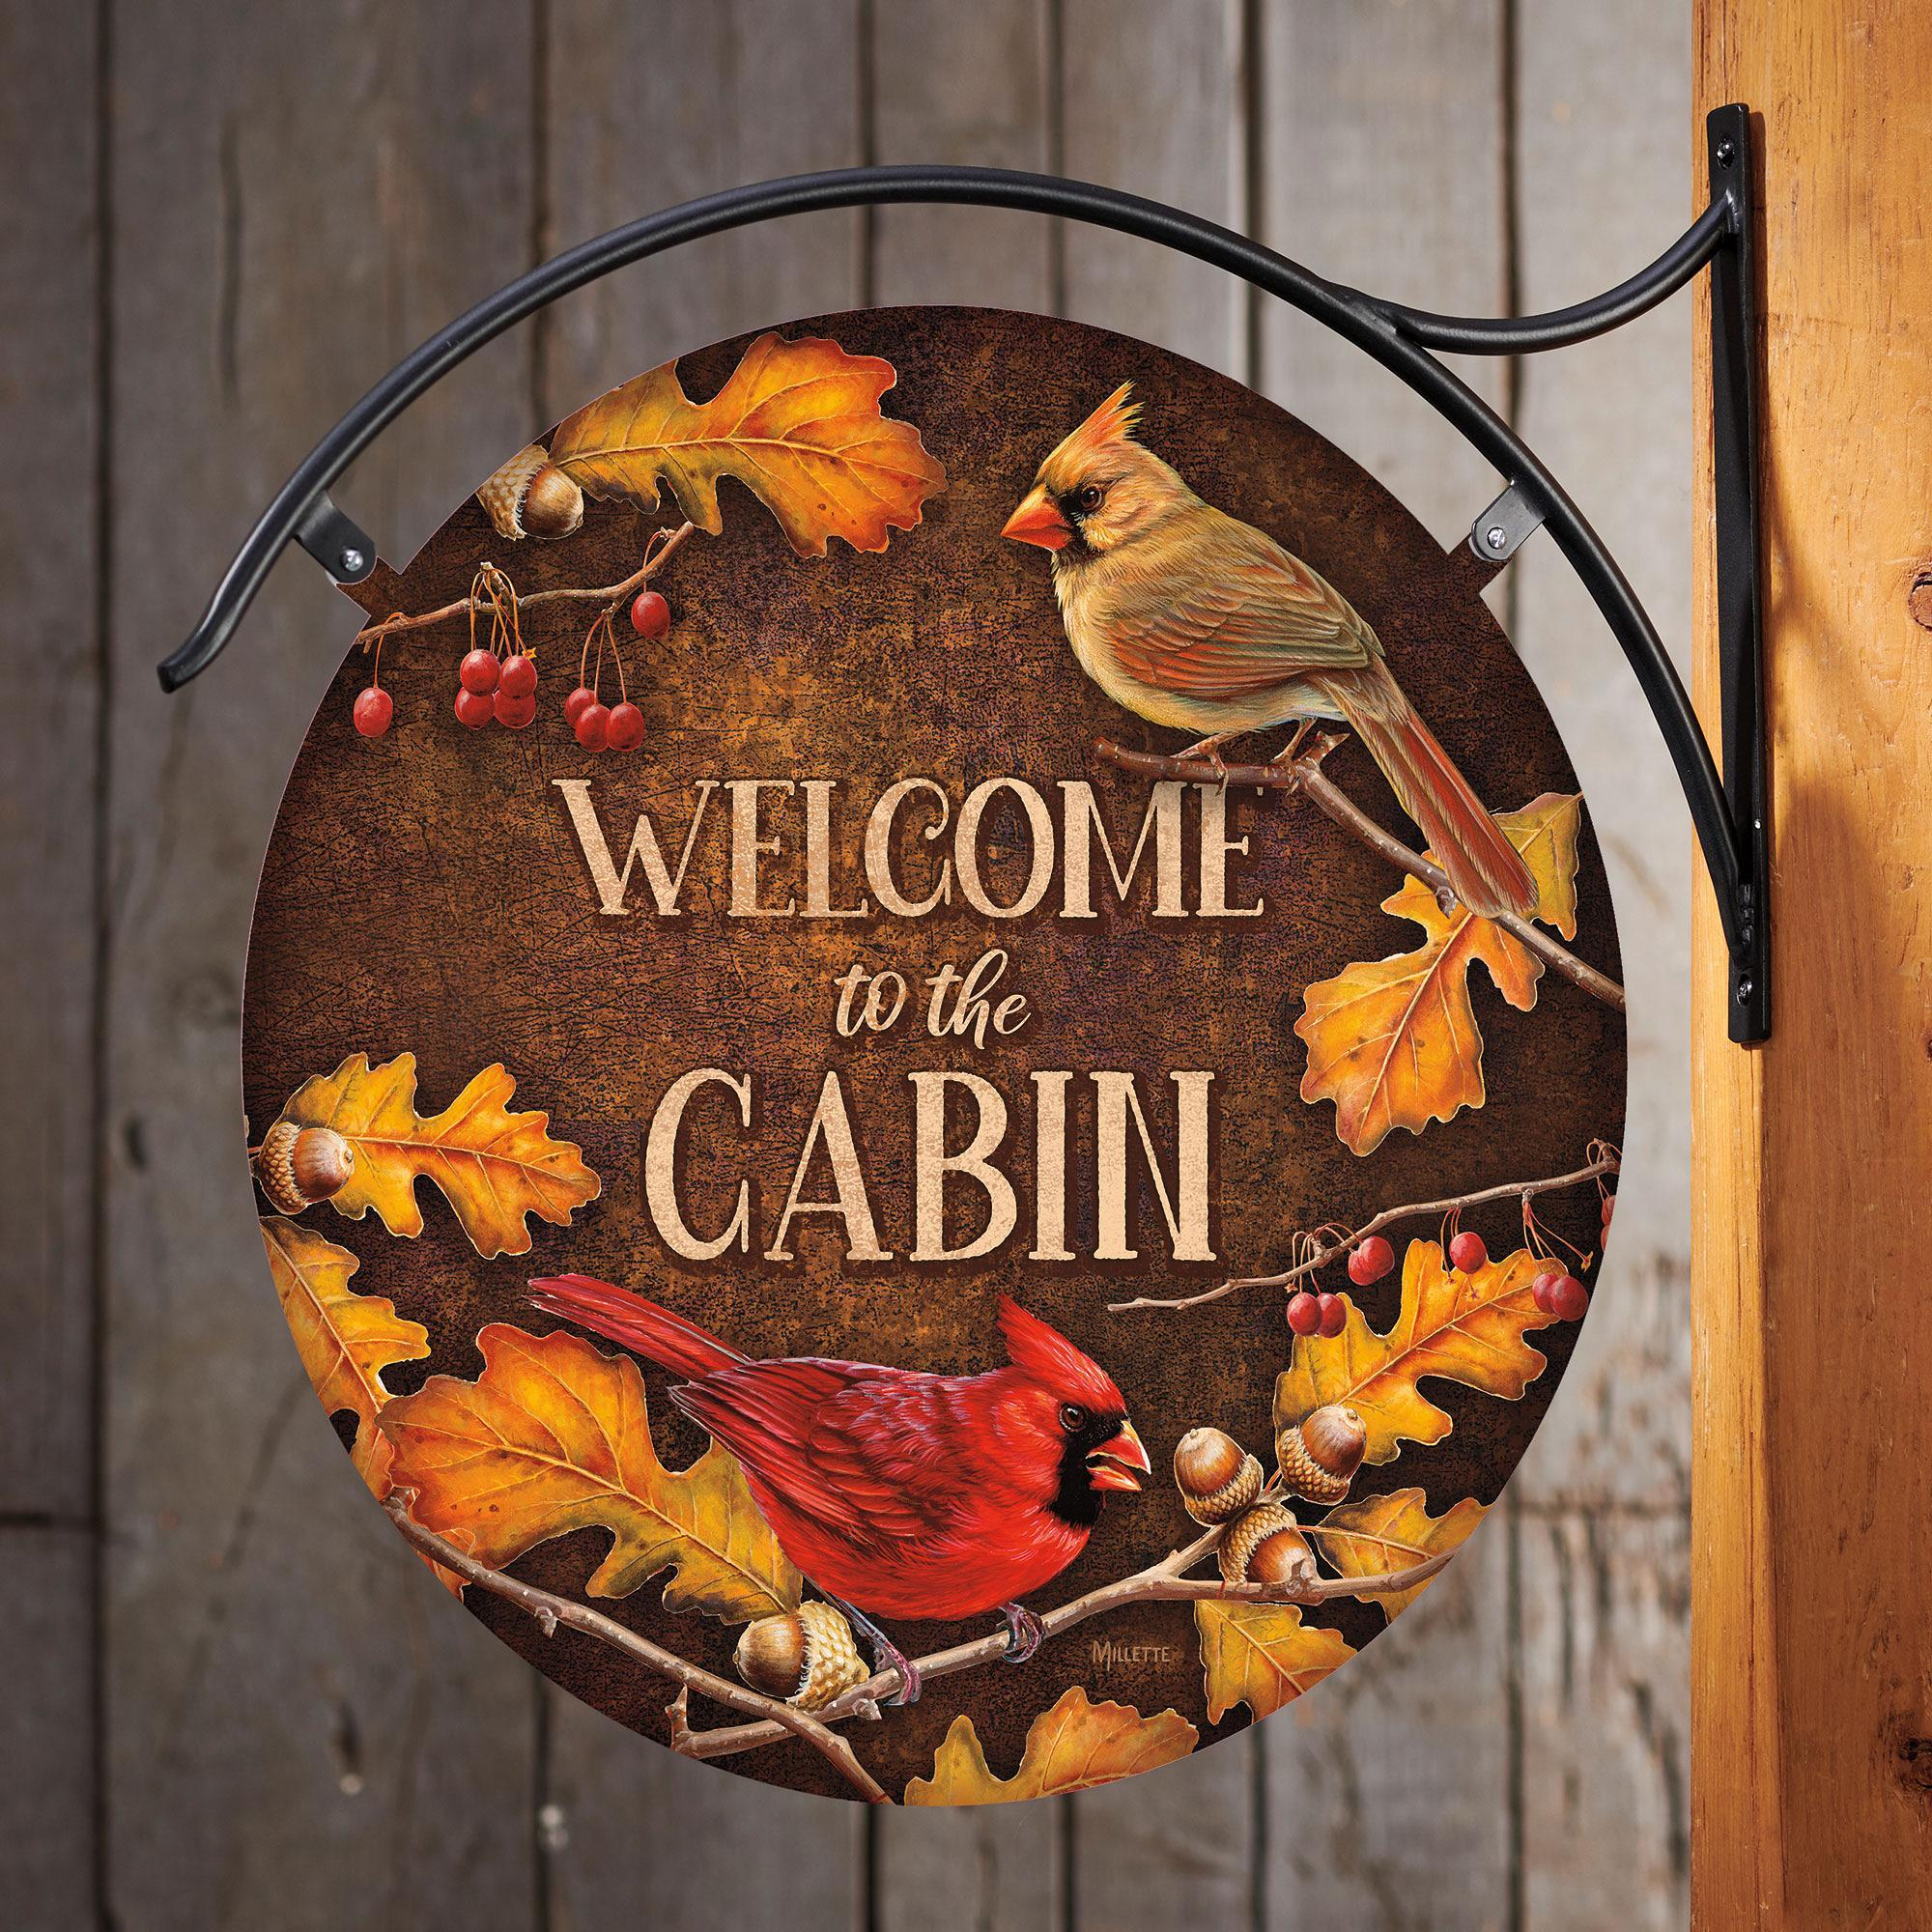 Welcome to the Cabin—Cardinals